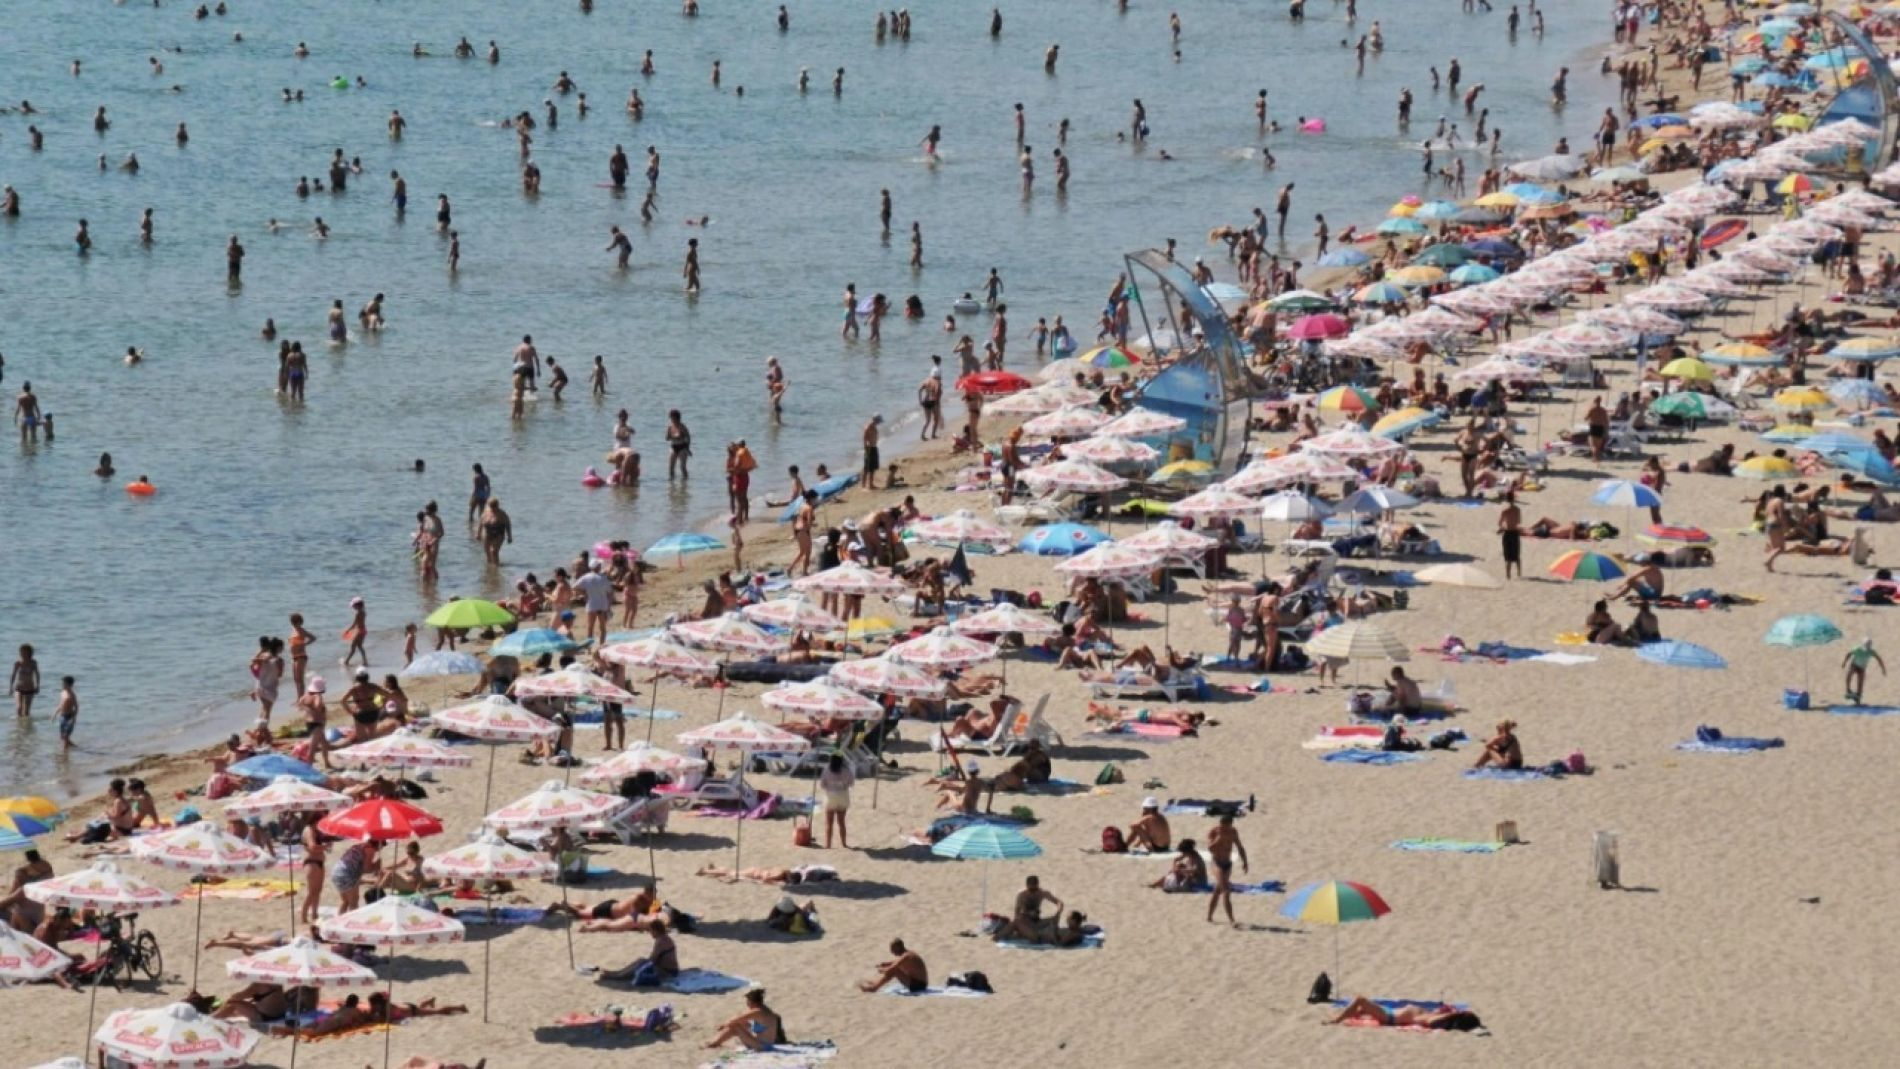 Until the end of May, the umbrellas in Sveti Vlas will be free